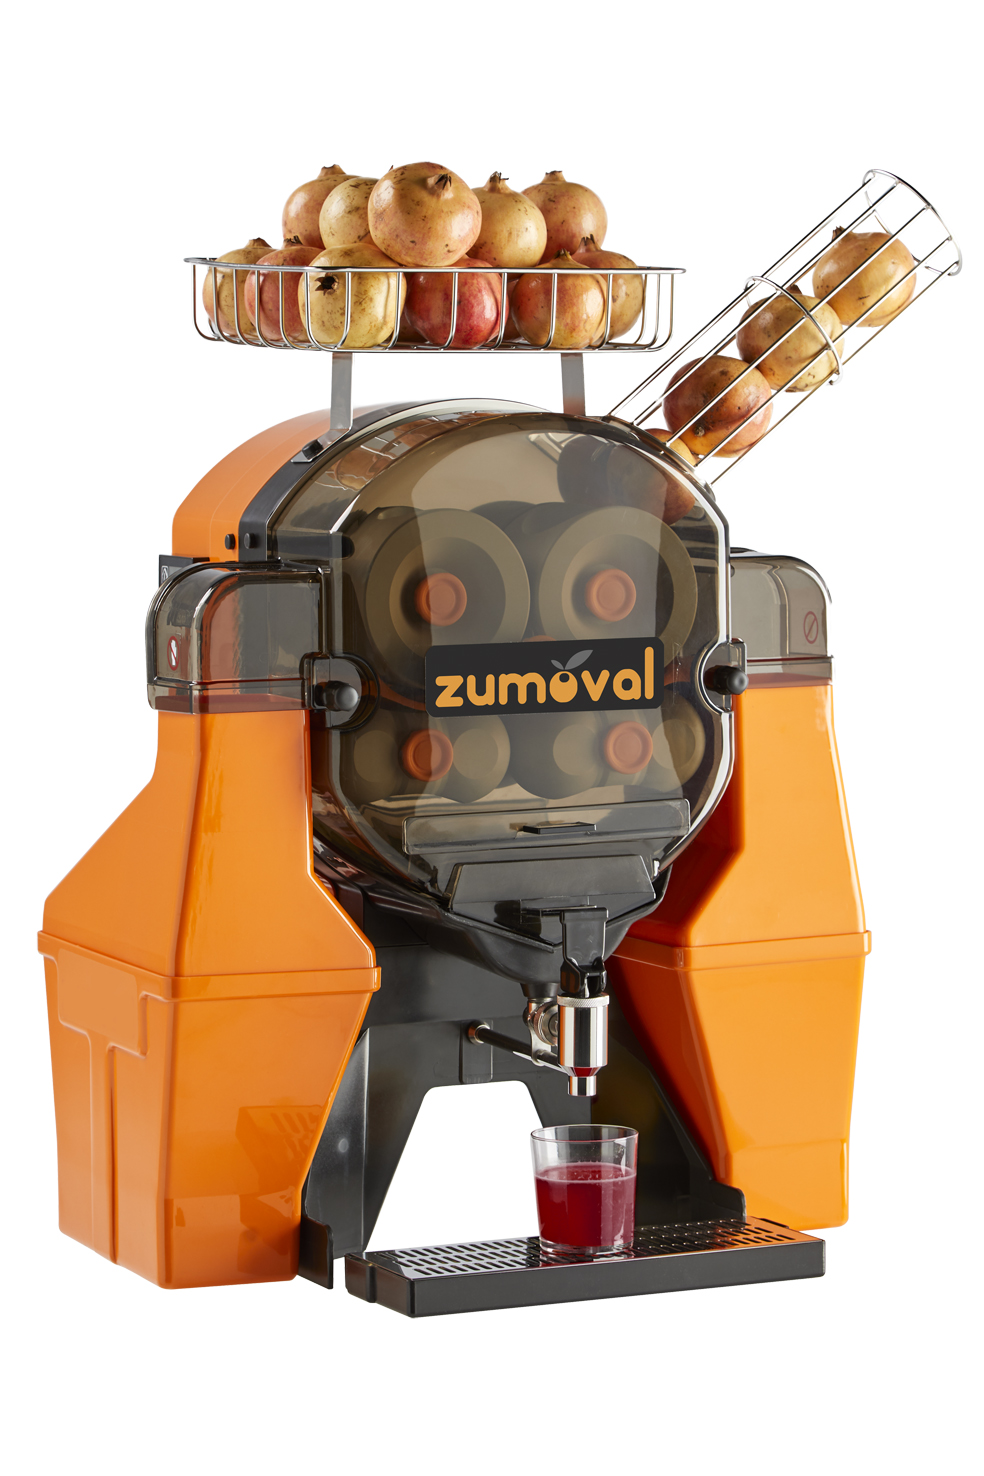 Bigbasic Zumoval Automatic Juicer Machines Orange